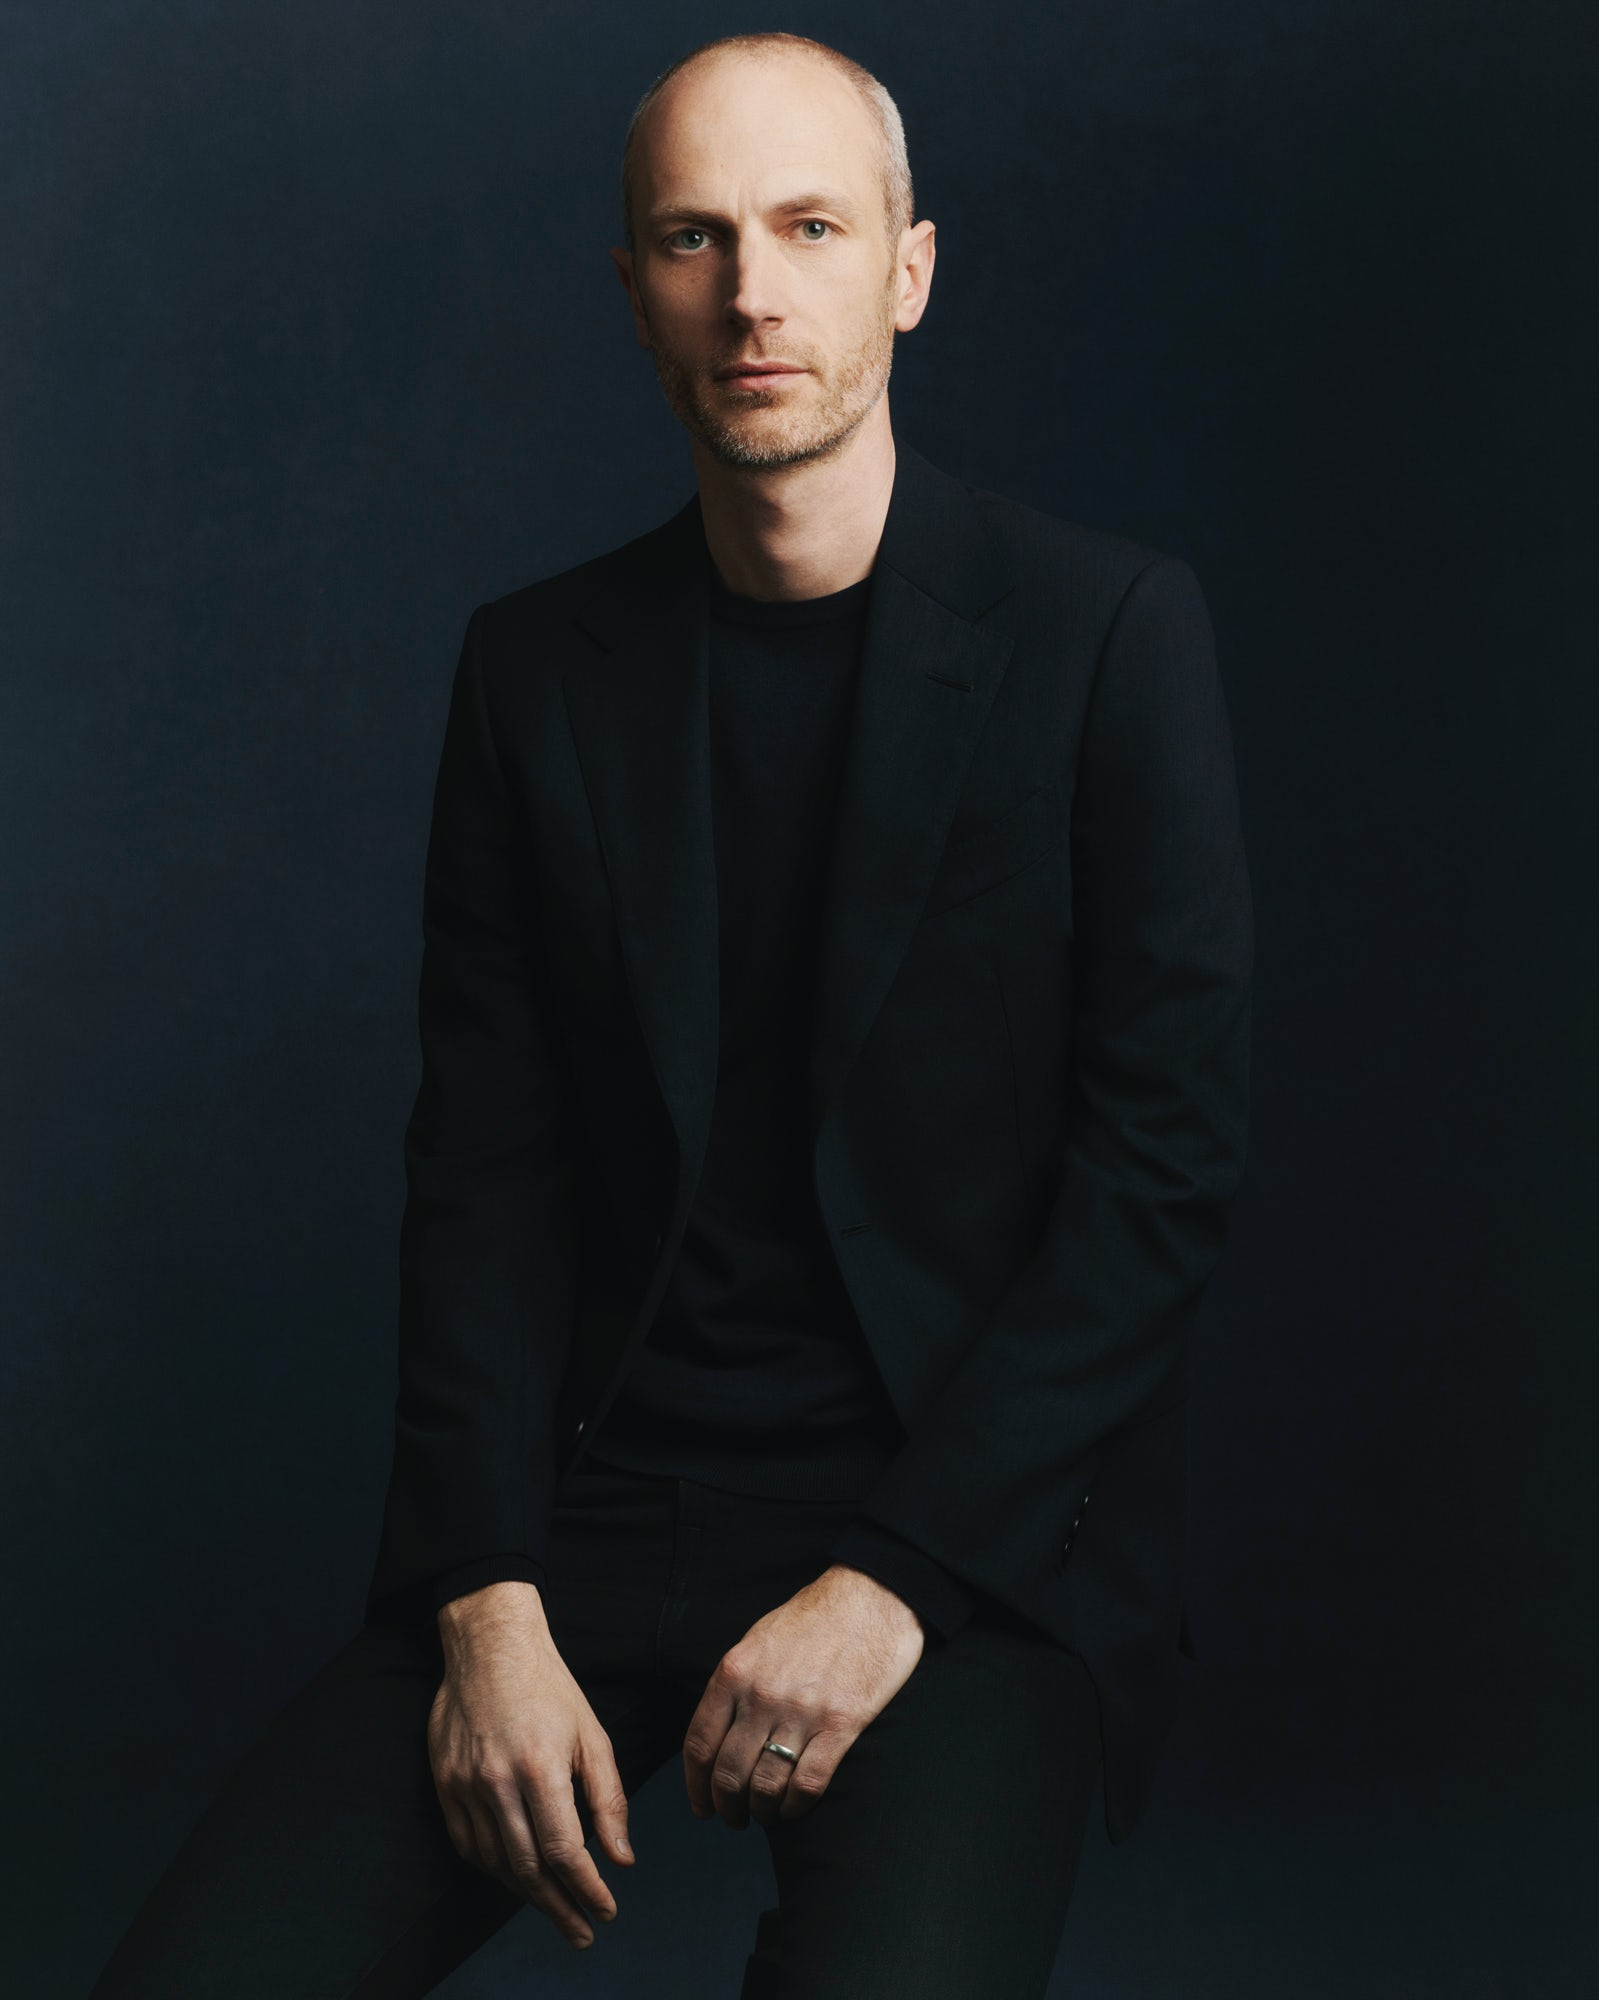 Article cover of News Bites | Dunhill Names New Creative Director, Roland Mouret Exits Robert Clergerie